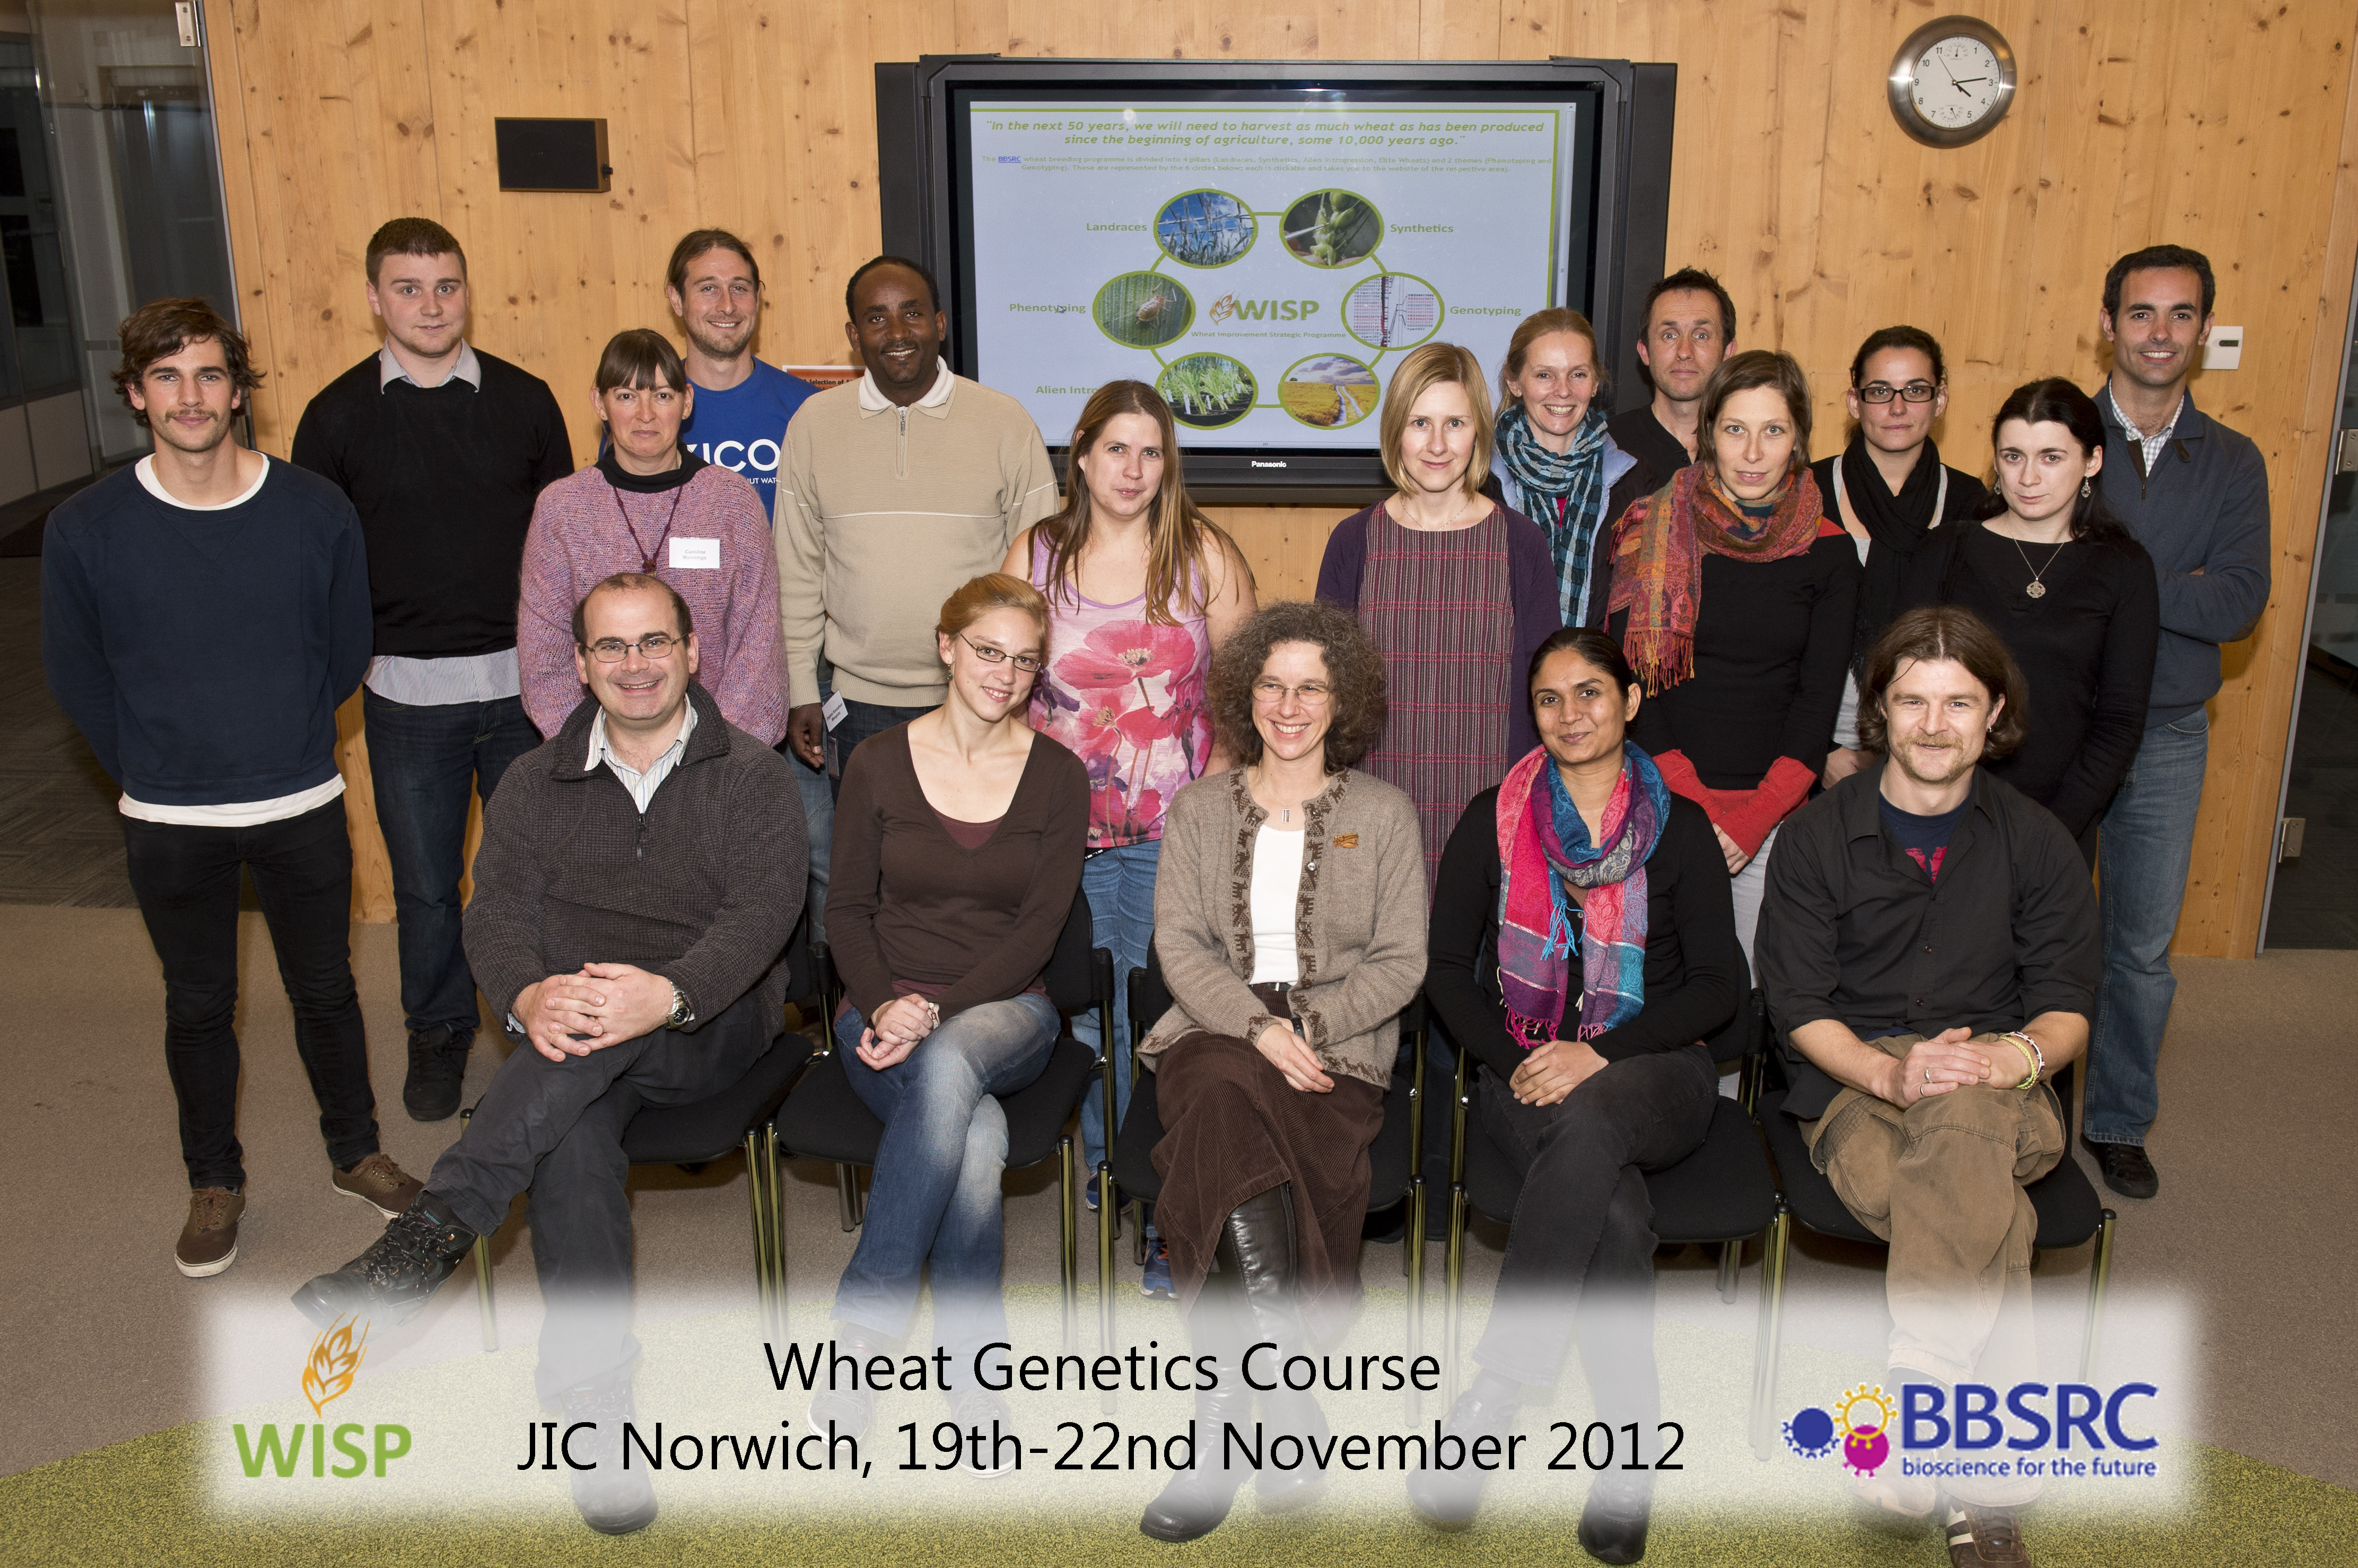 WISP Course Group Photo Nov 2012.JPG